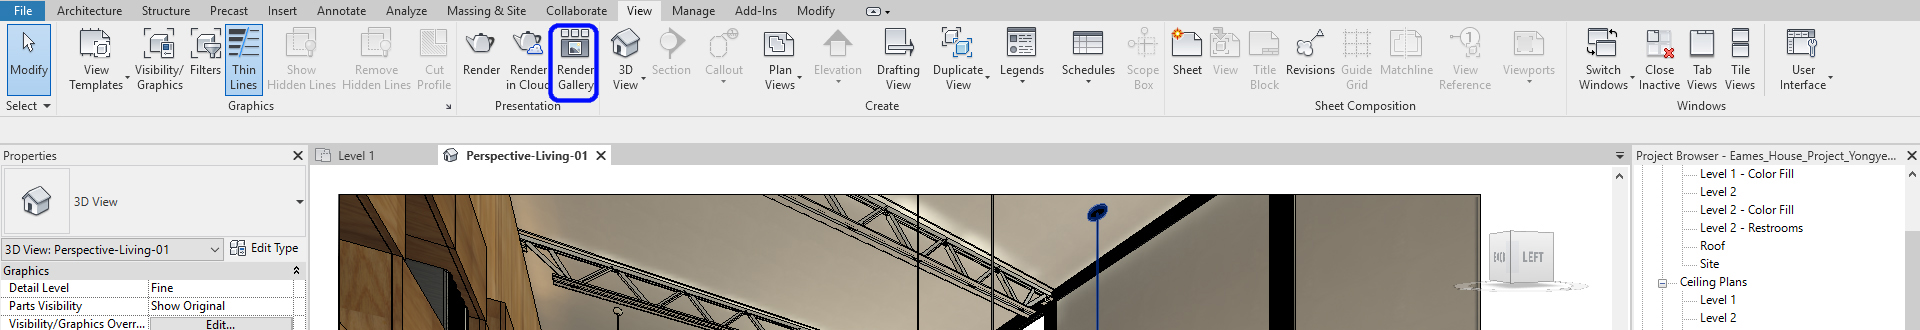 It indicates how to open the Cloud Render Gallery.